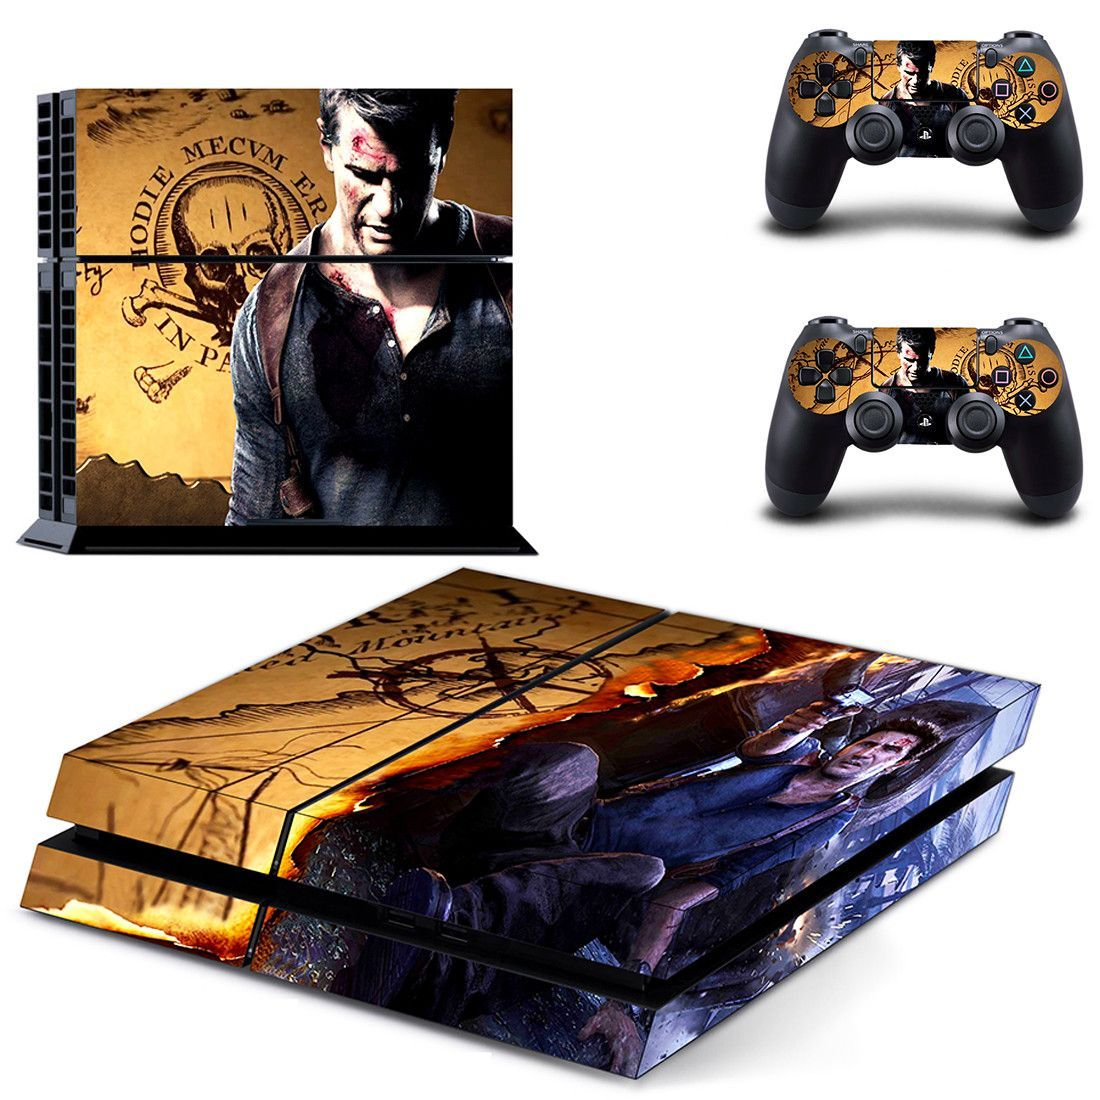 Uncharted 4 a thiefs end ps4 skin for console and controllers ... 6fb21350377